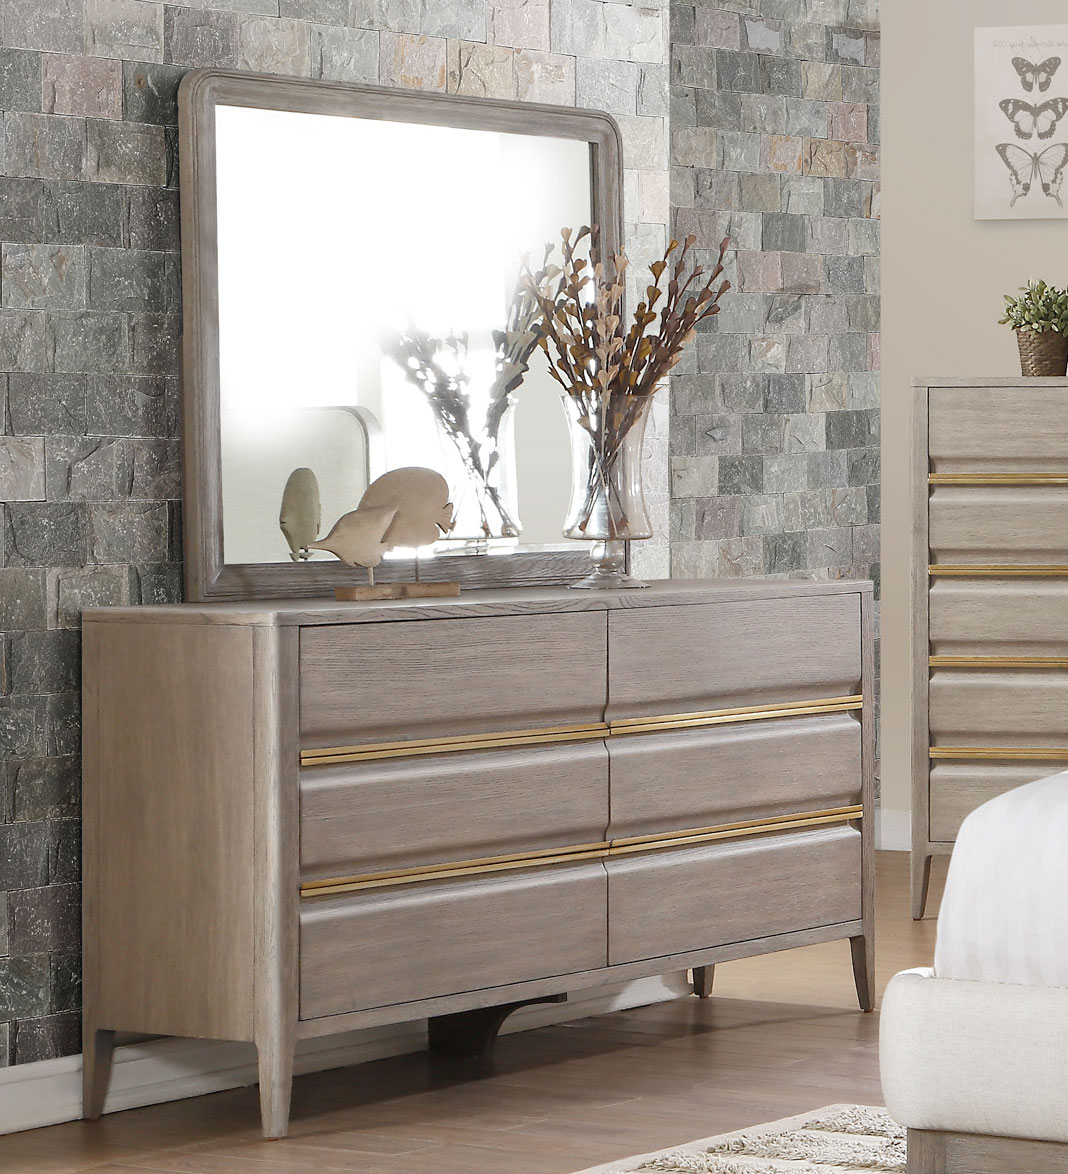 Homelegance Aristide Dresser - Gold and Weathered Grey